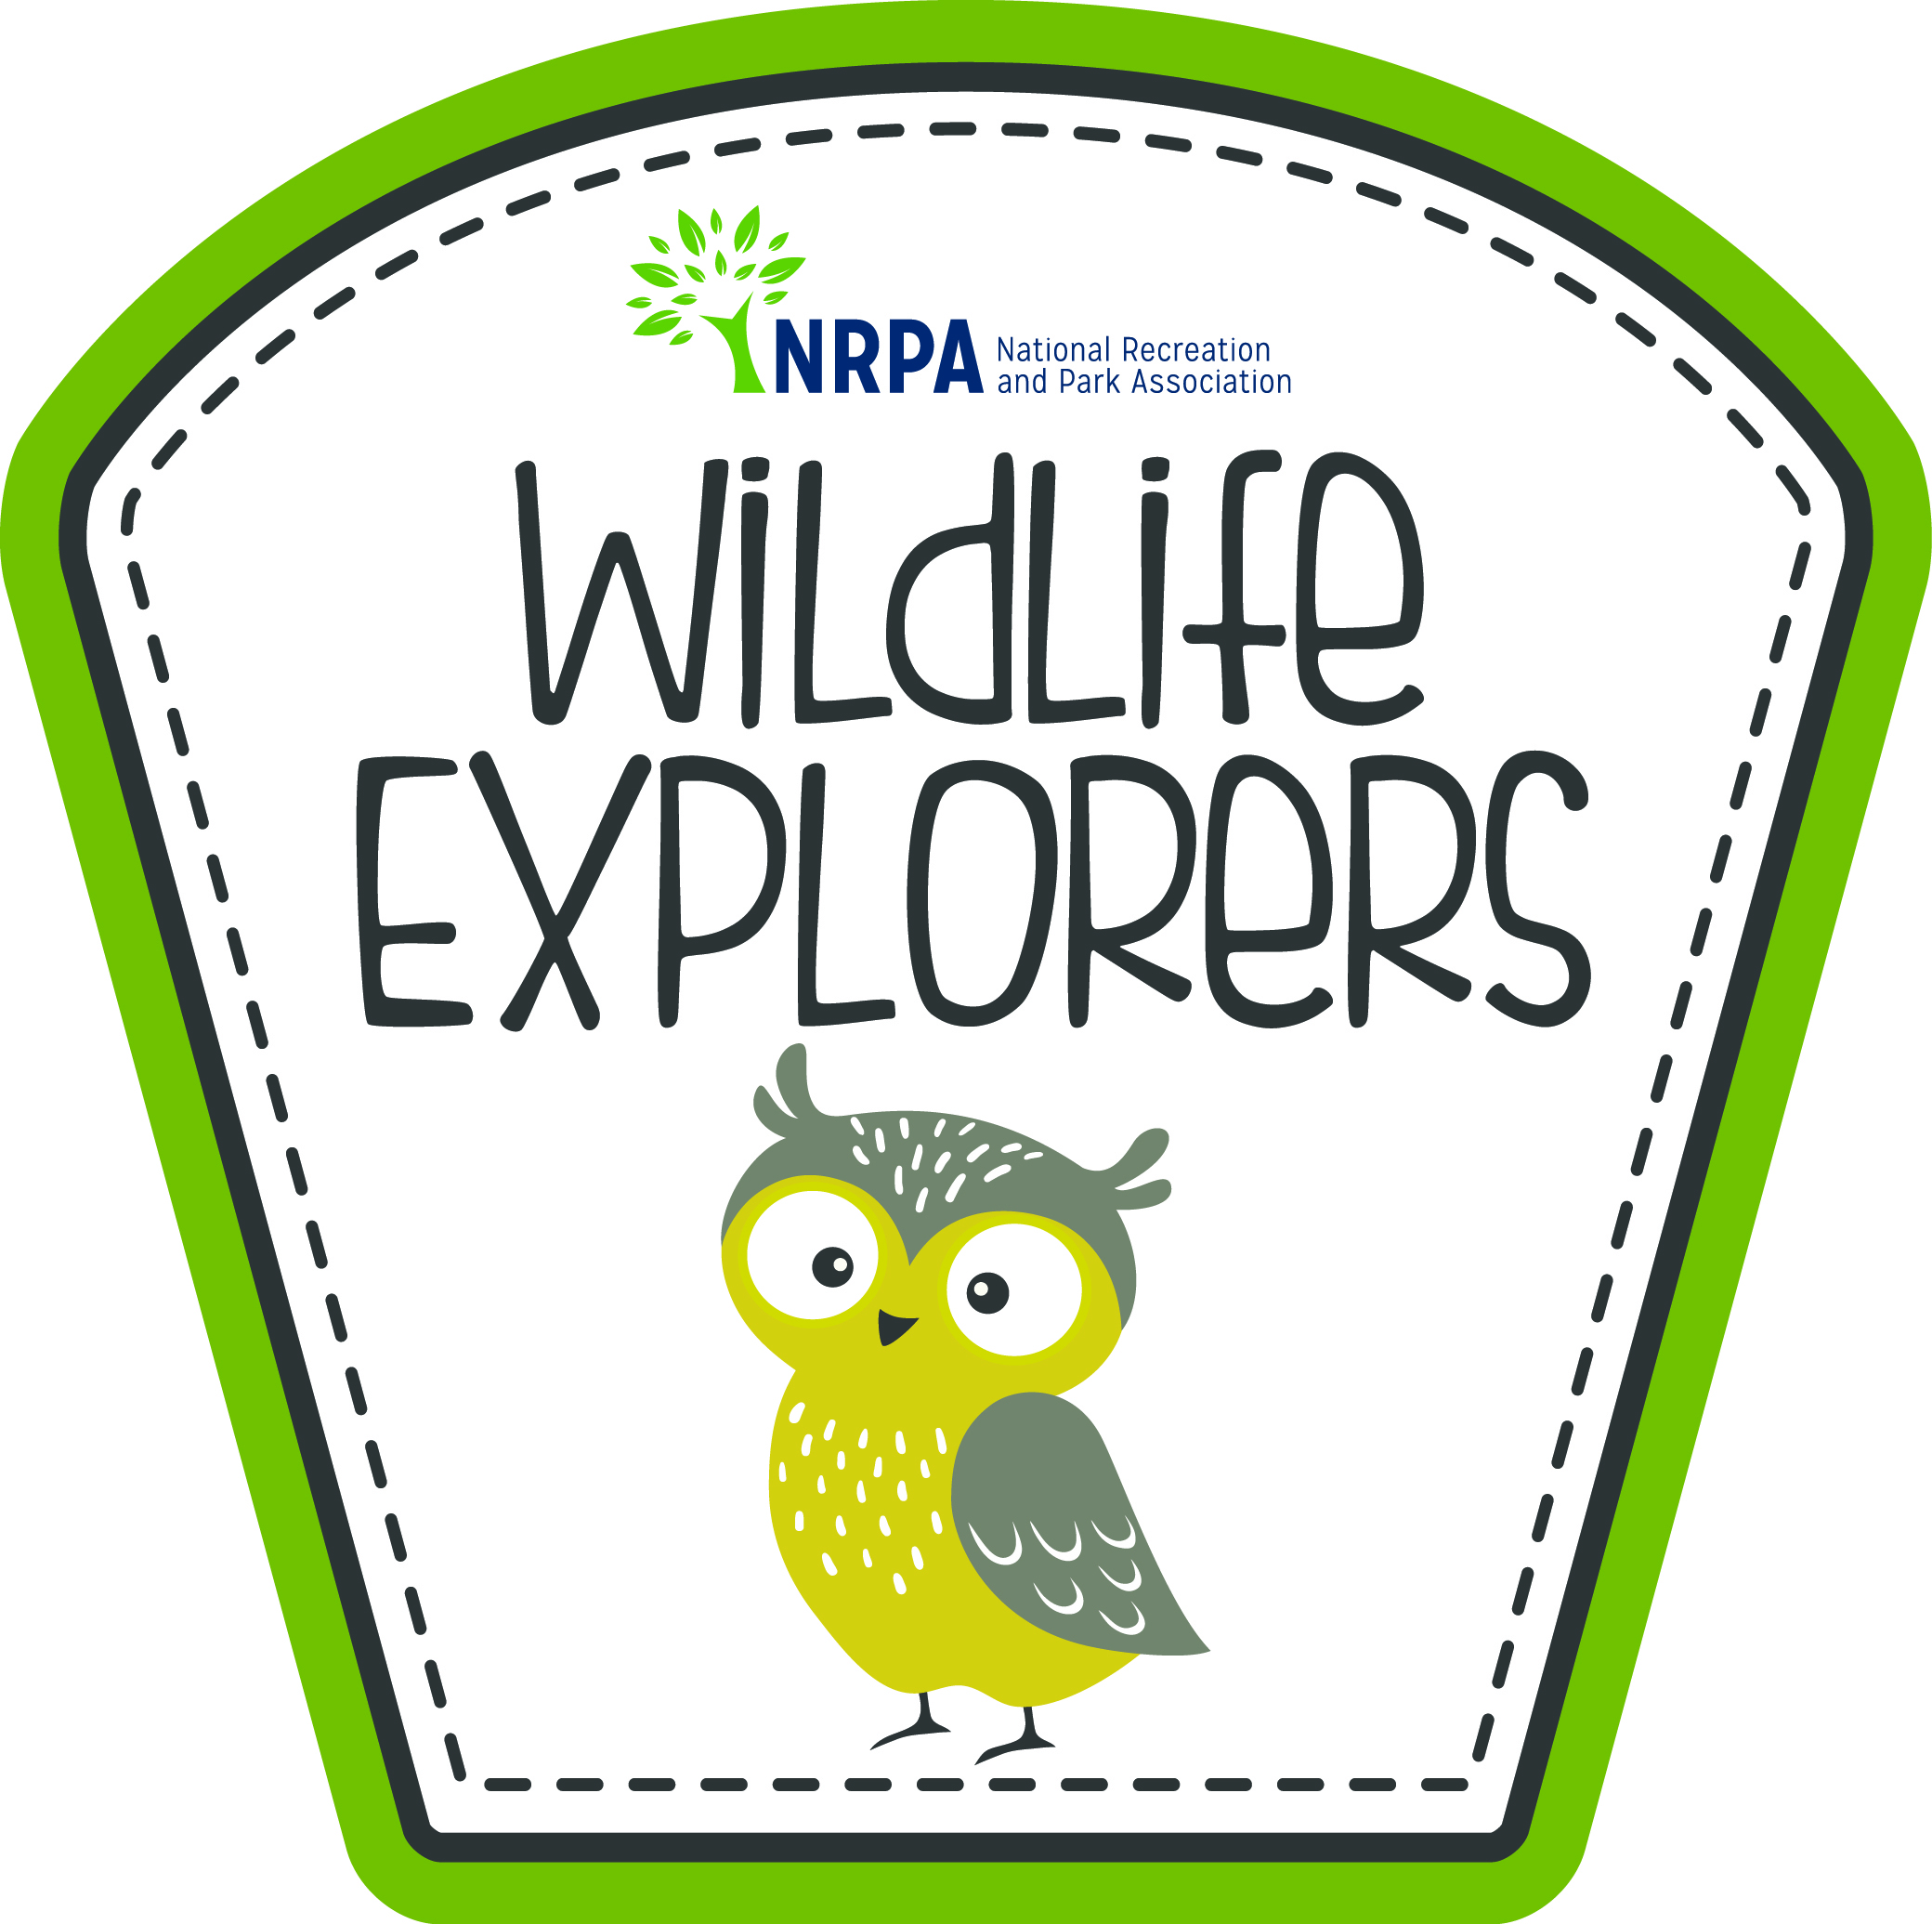 Wildlife Explorers